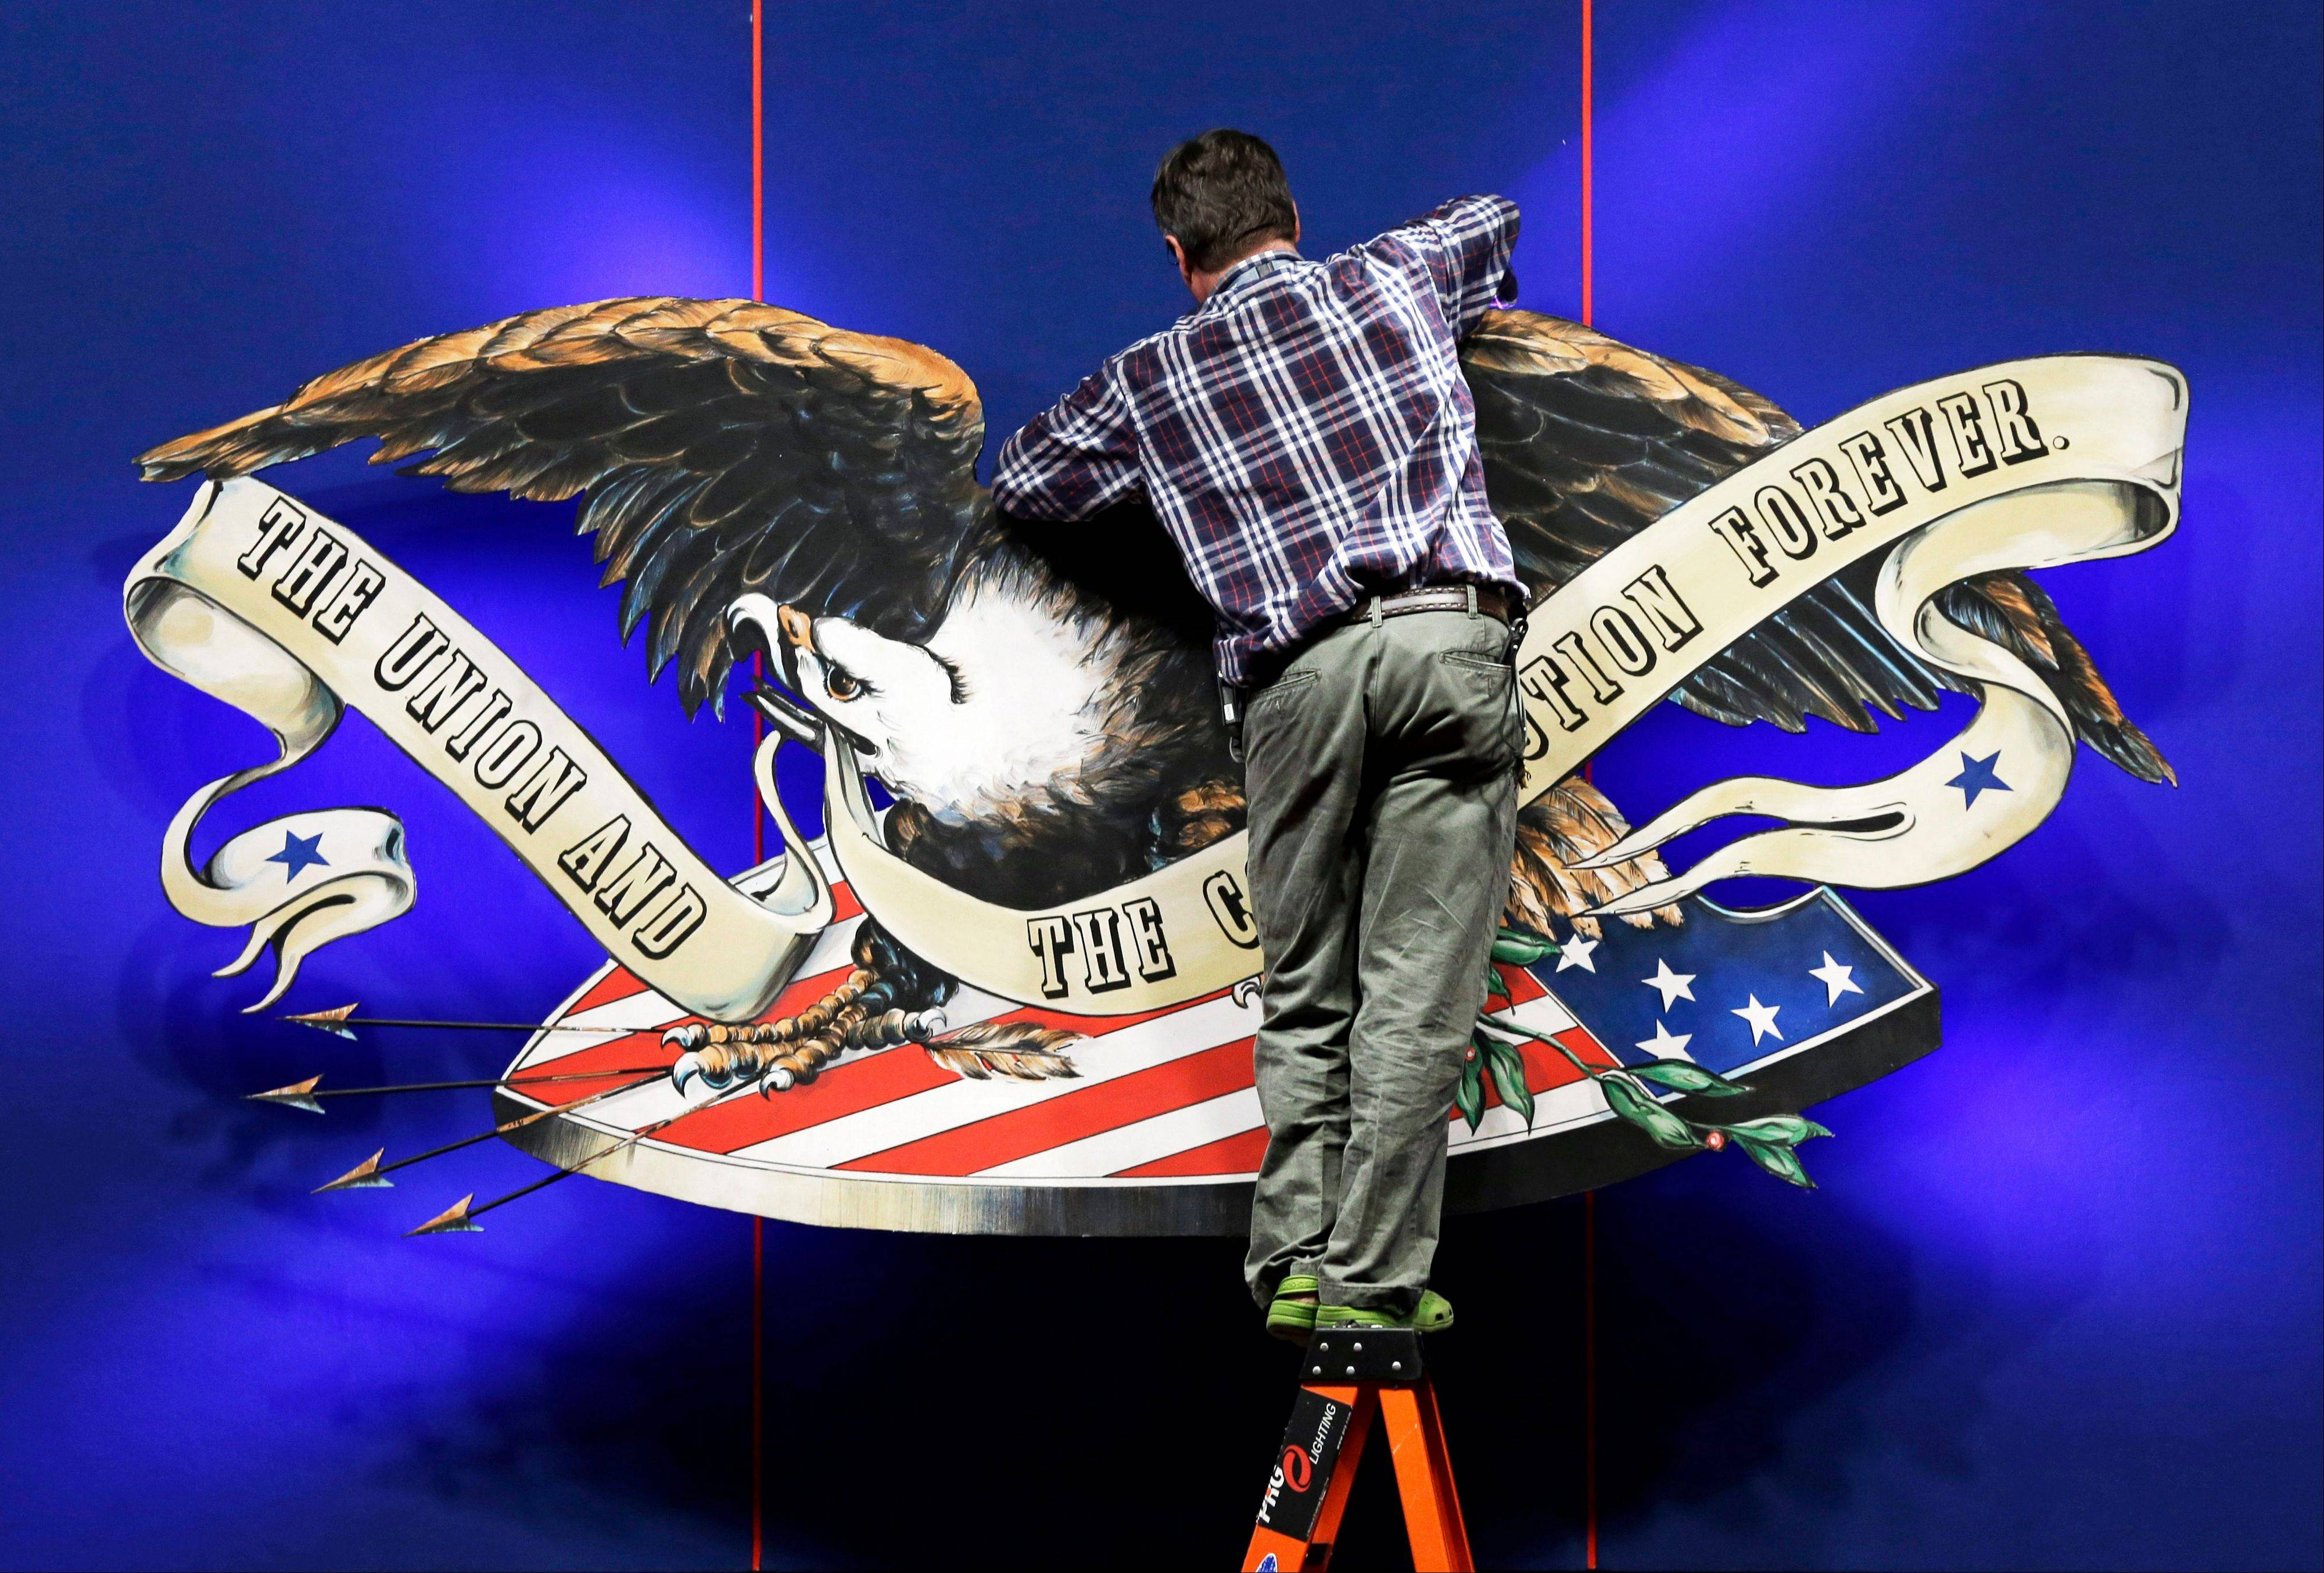 A worker adjusts the backdrop on stage in preparation for Monday's presidential debate between President Barack Obama and Republican presidential candidate, former Massachusetts Gov. Mitt Romney, Sunday at Lynn University in Boca Raton, Fla.